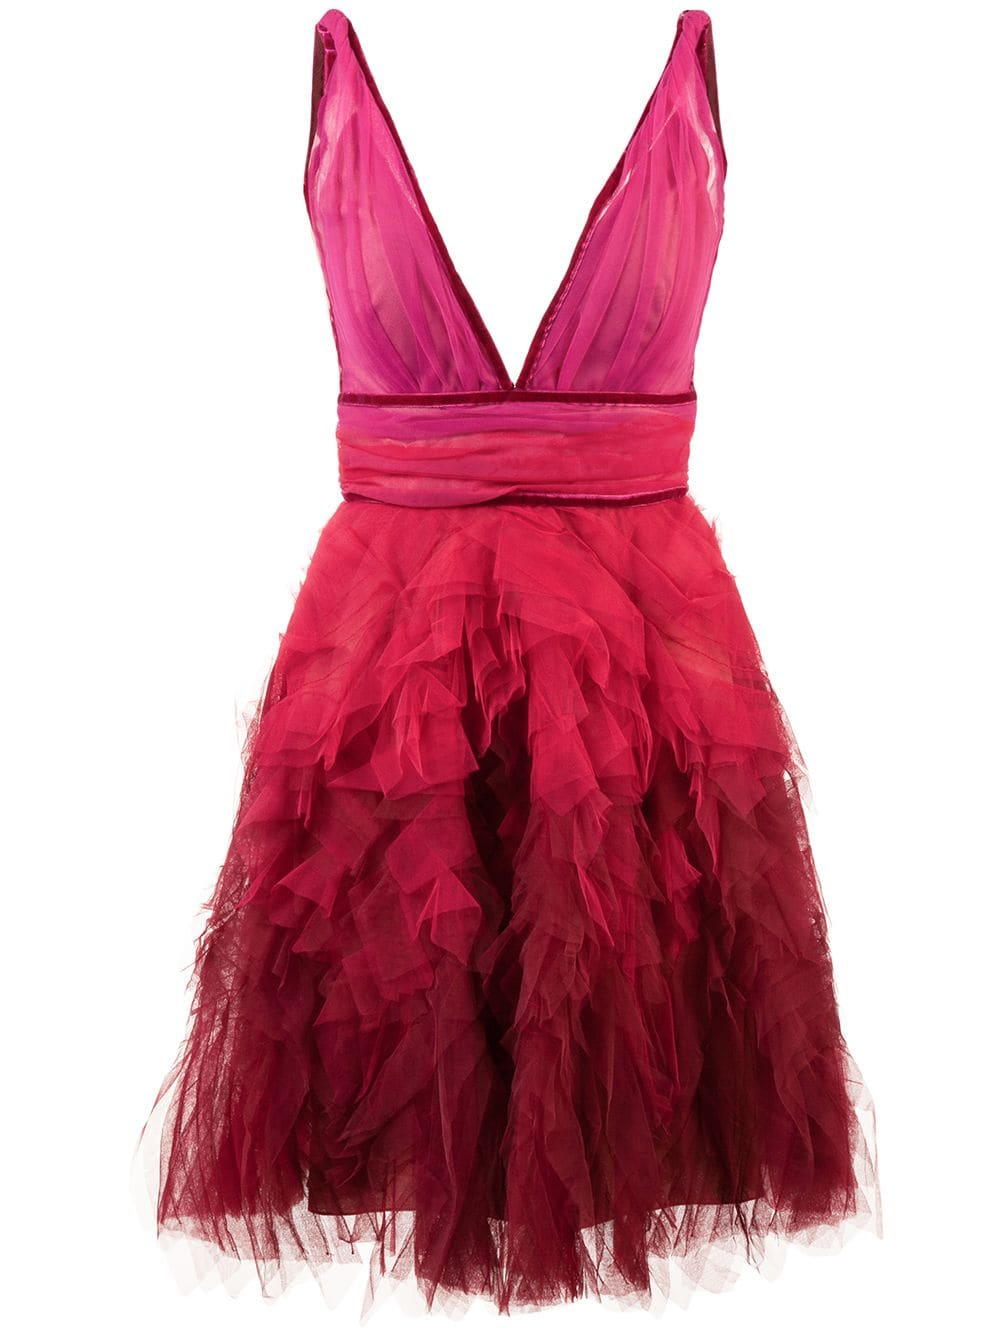 5 Trendy New Years Eve Outfits for women and men, tulle dress, MARCHESA NOTTE ruffle tulle pink dress